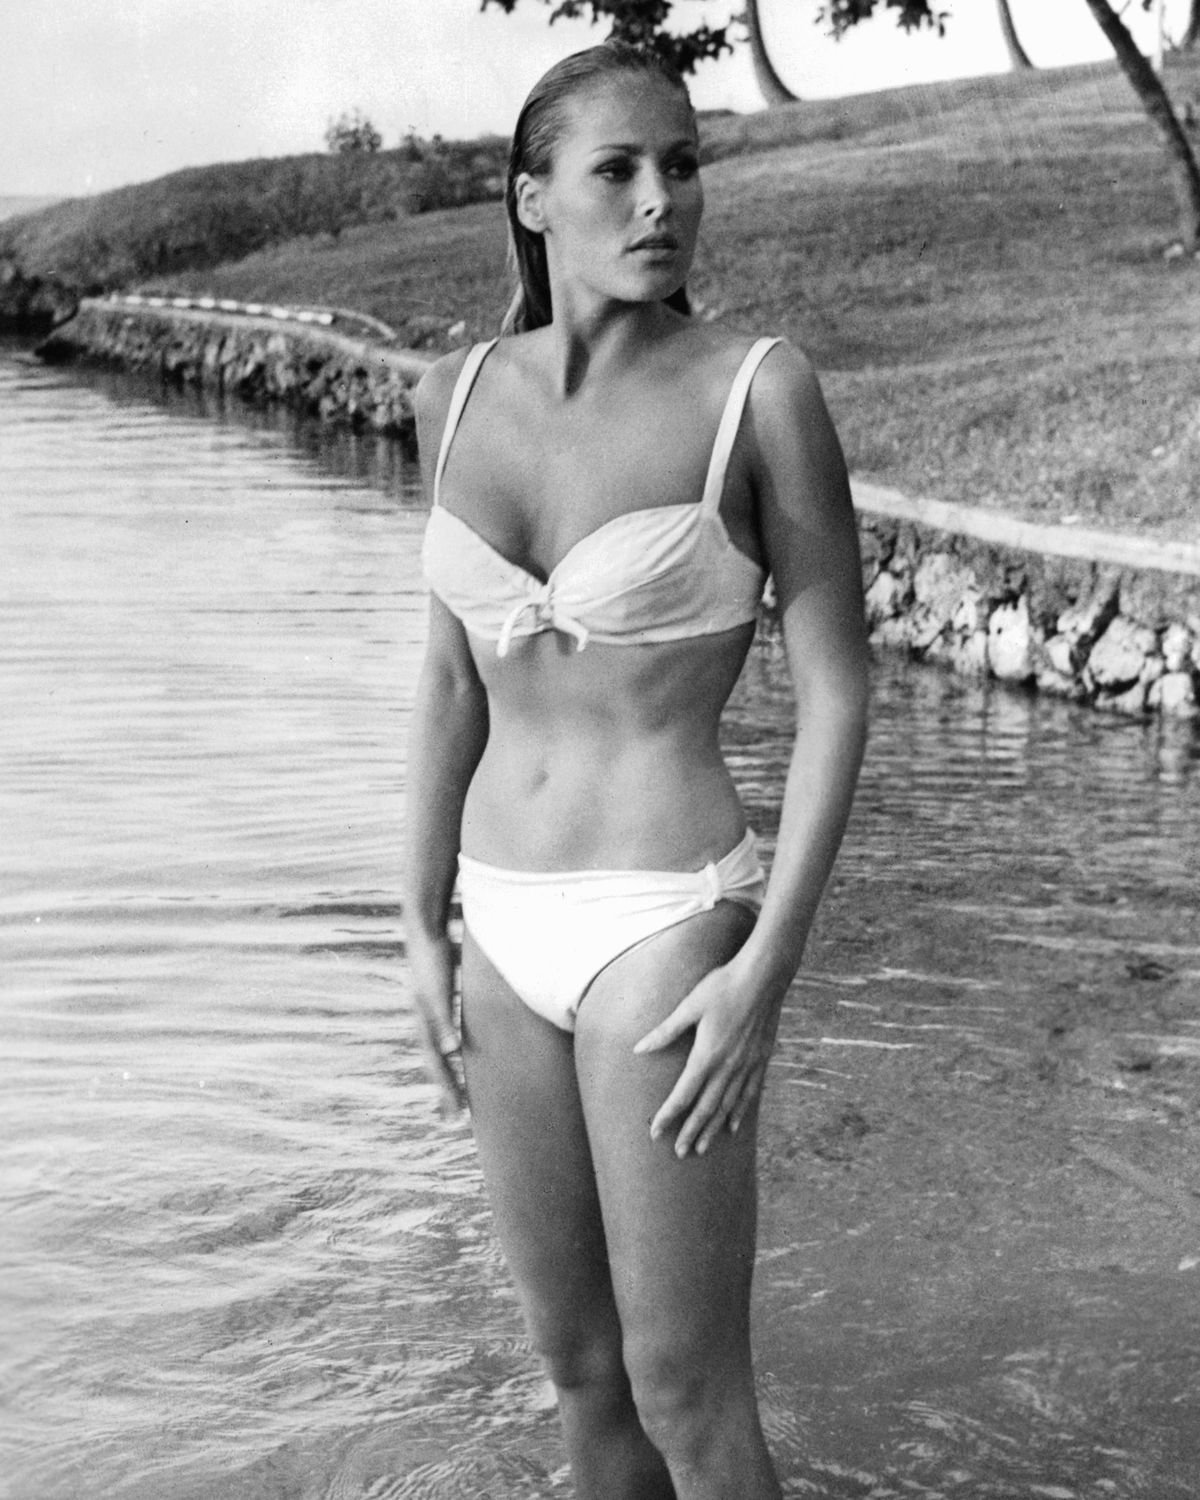 Ursula Andress on the set of Dr. No (left) and Raquel Welch in a publicity  shot for One Million Years B.C. (right). Photos: Getty Images